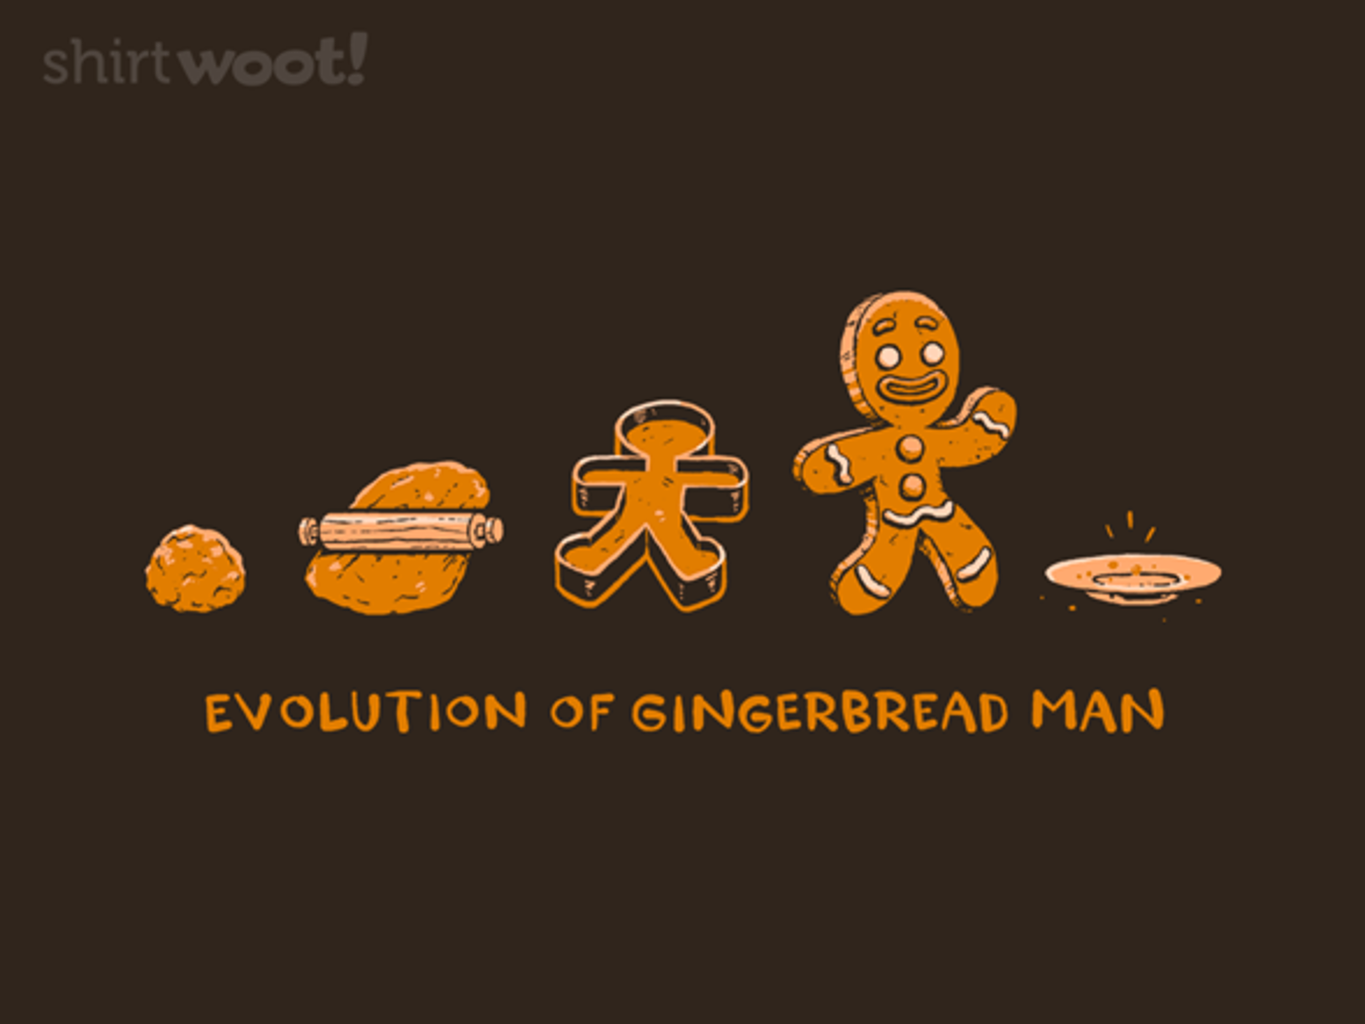 Woot!: Evolution of (Gingerbread) Man - $15.00 + Free shipping